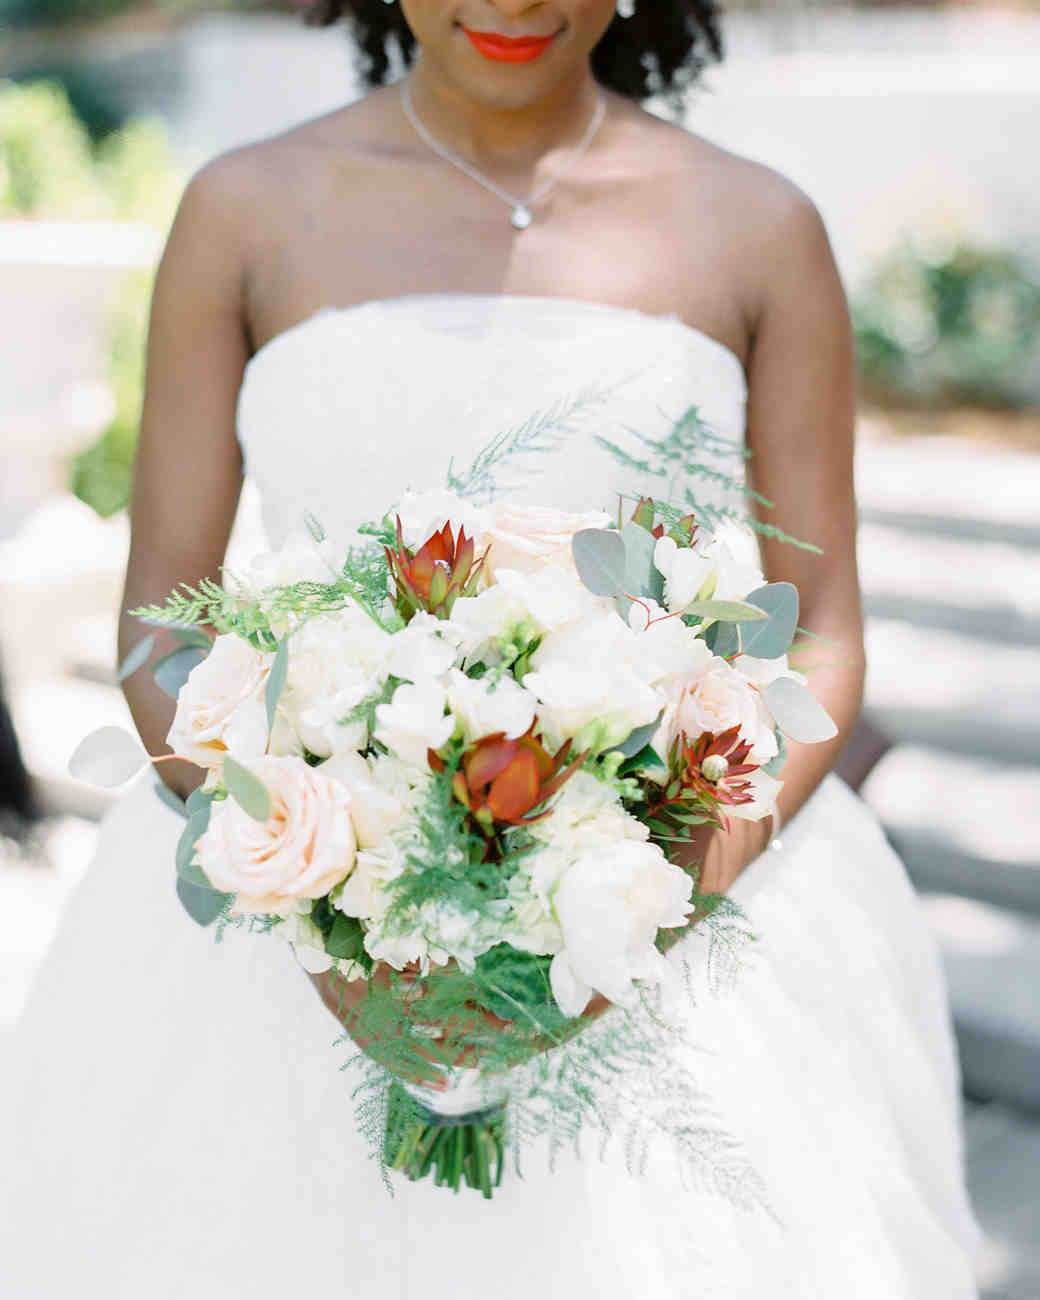 niara allen wedding bouquet